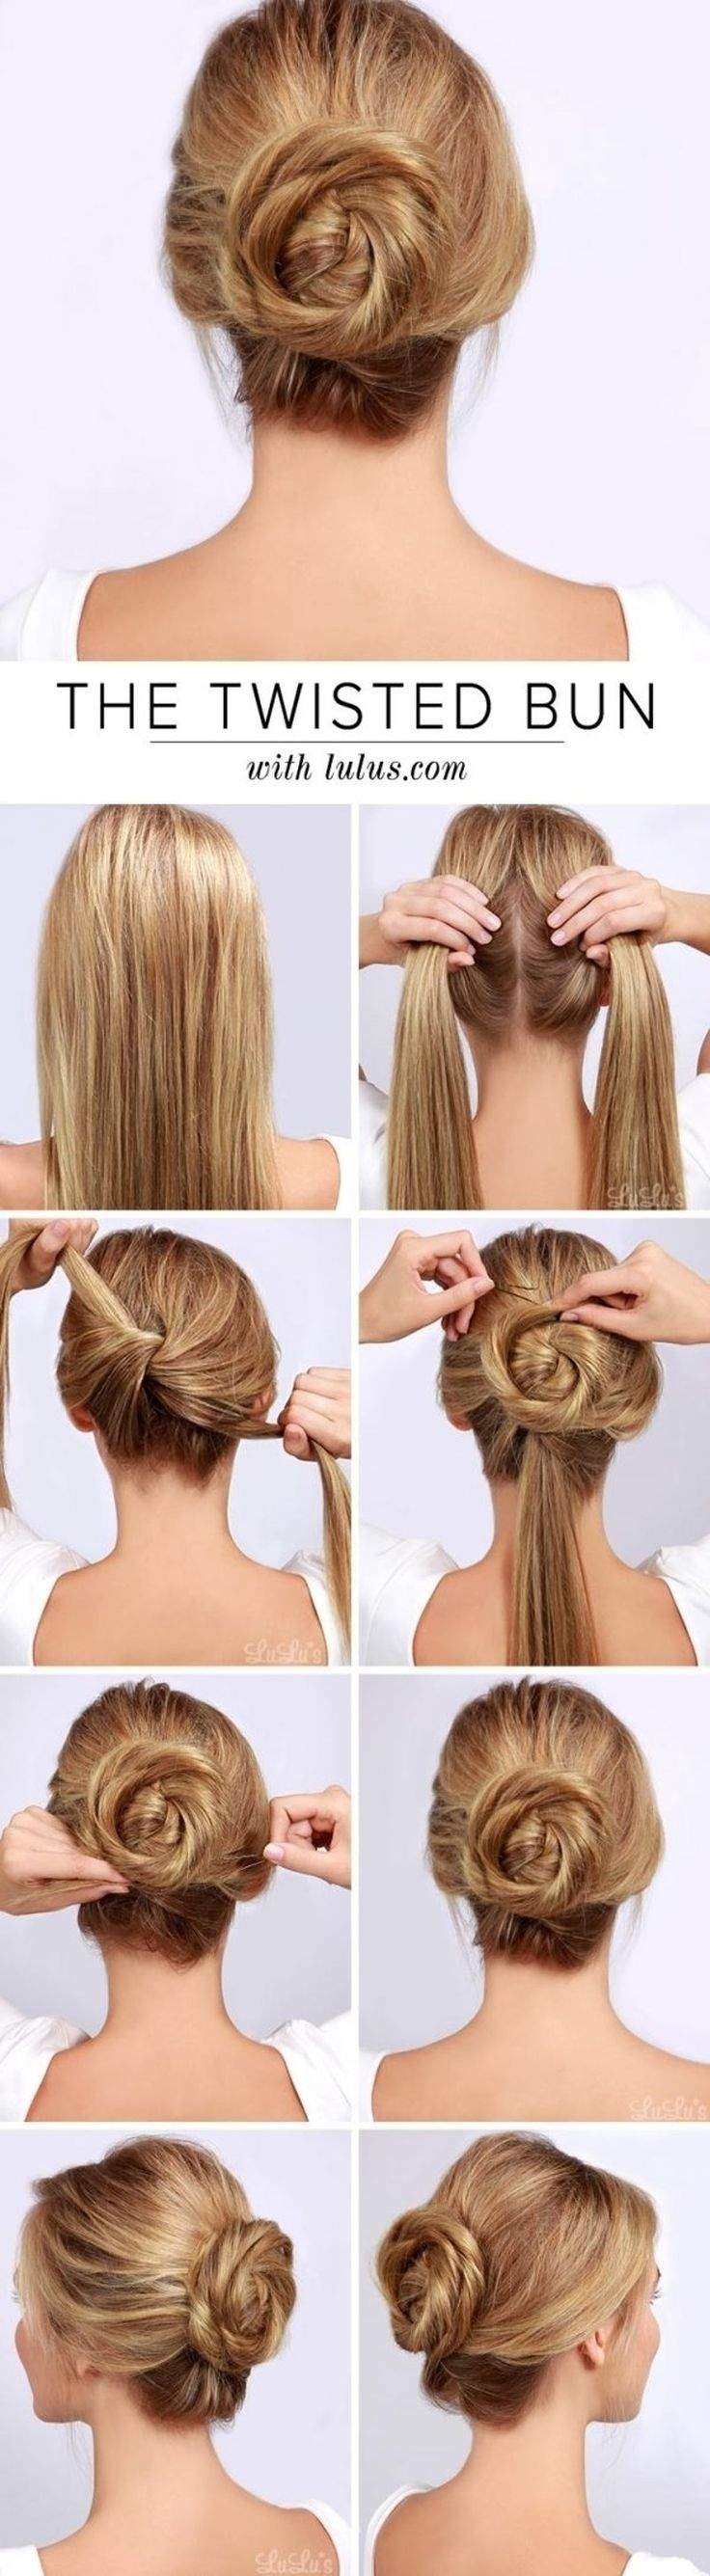 best up styles for long hair images on pinterest cute hairstyles